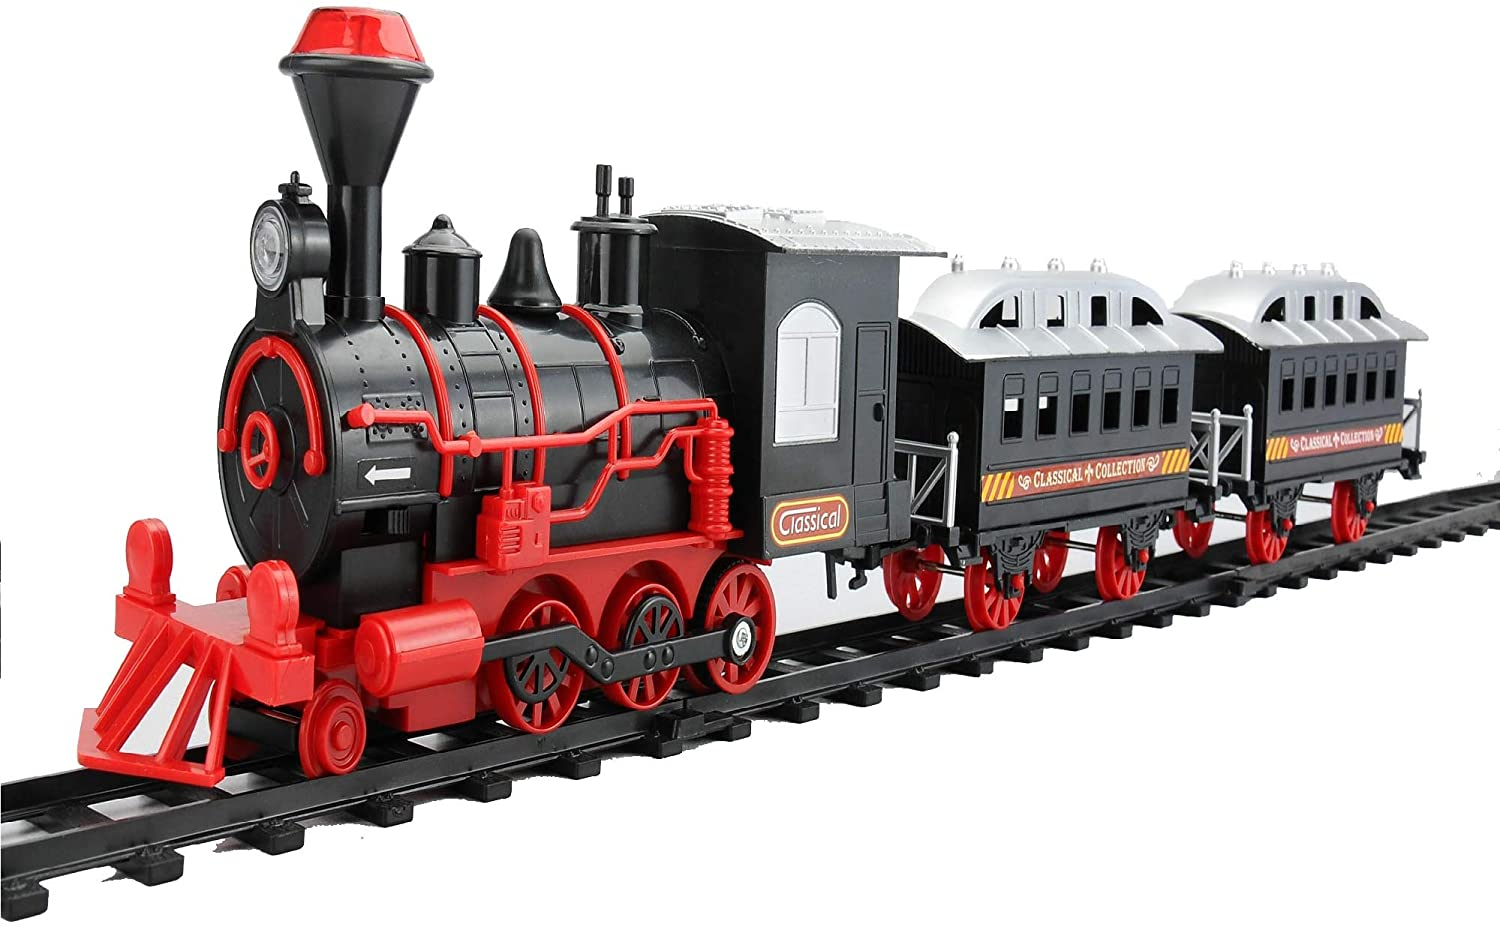 Northlight 13-Piece Red and Black Battery Operated Lighted and Animated Classic Train Set with Sound